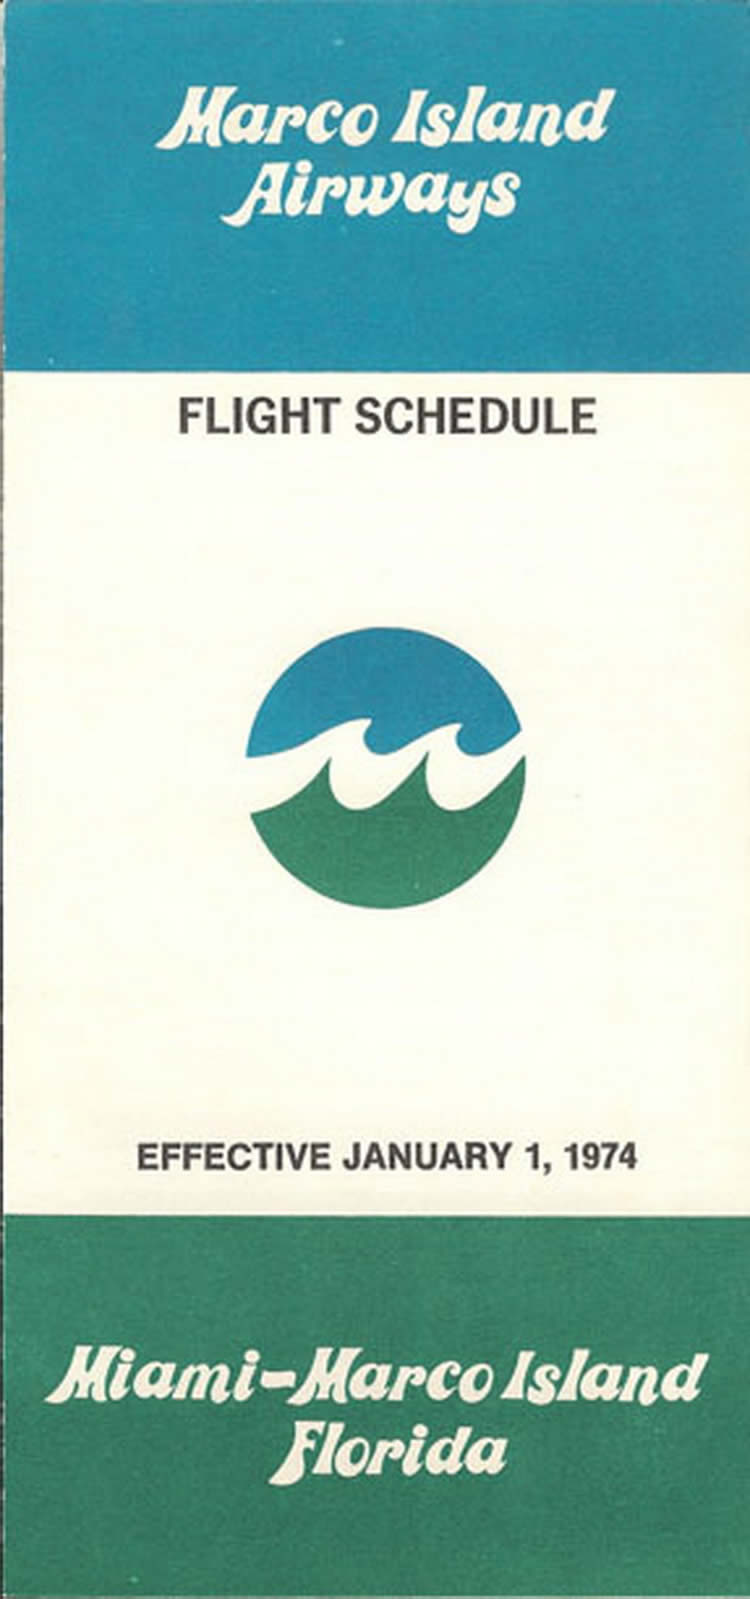 vintage airline timetable for Marco Island Airways